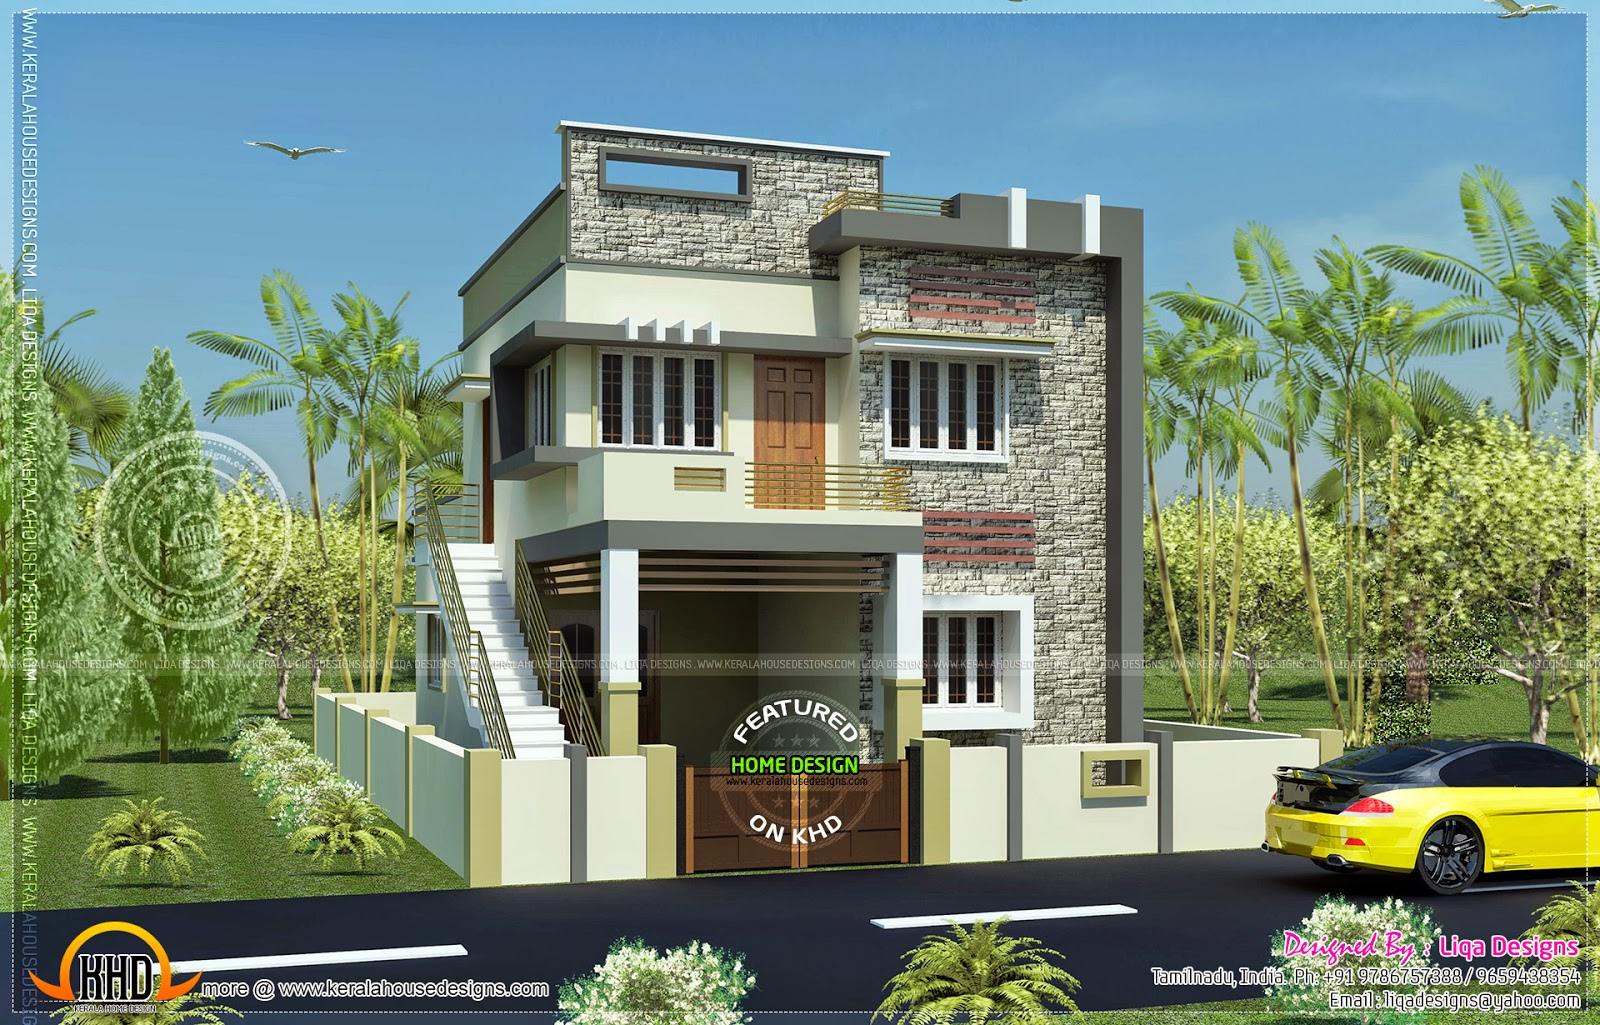 1289 Sq Ft 4 Bedroom Modern Tamil House Design Home